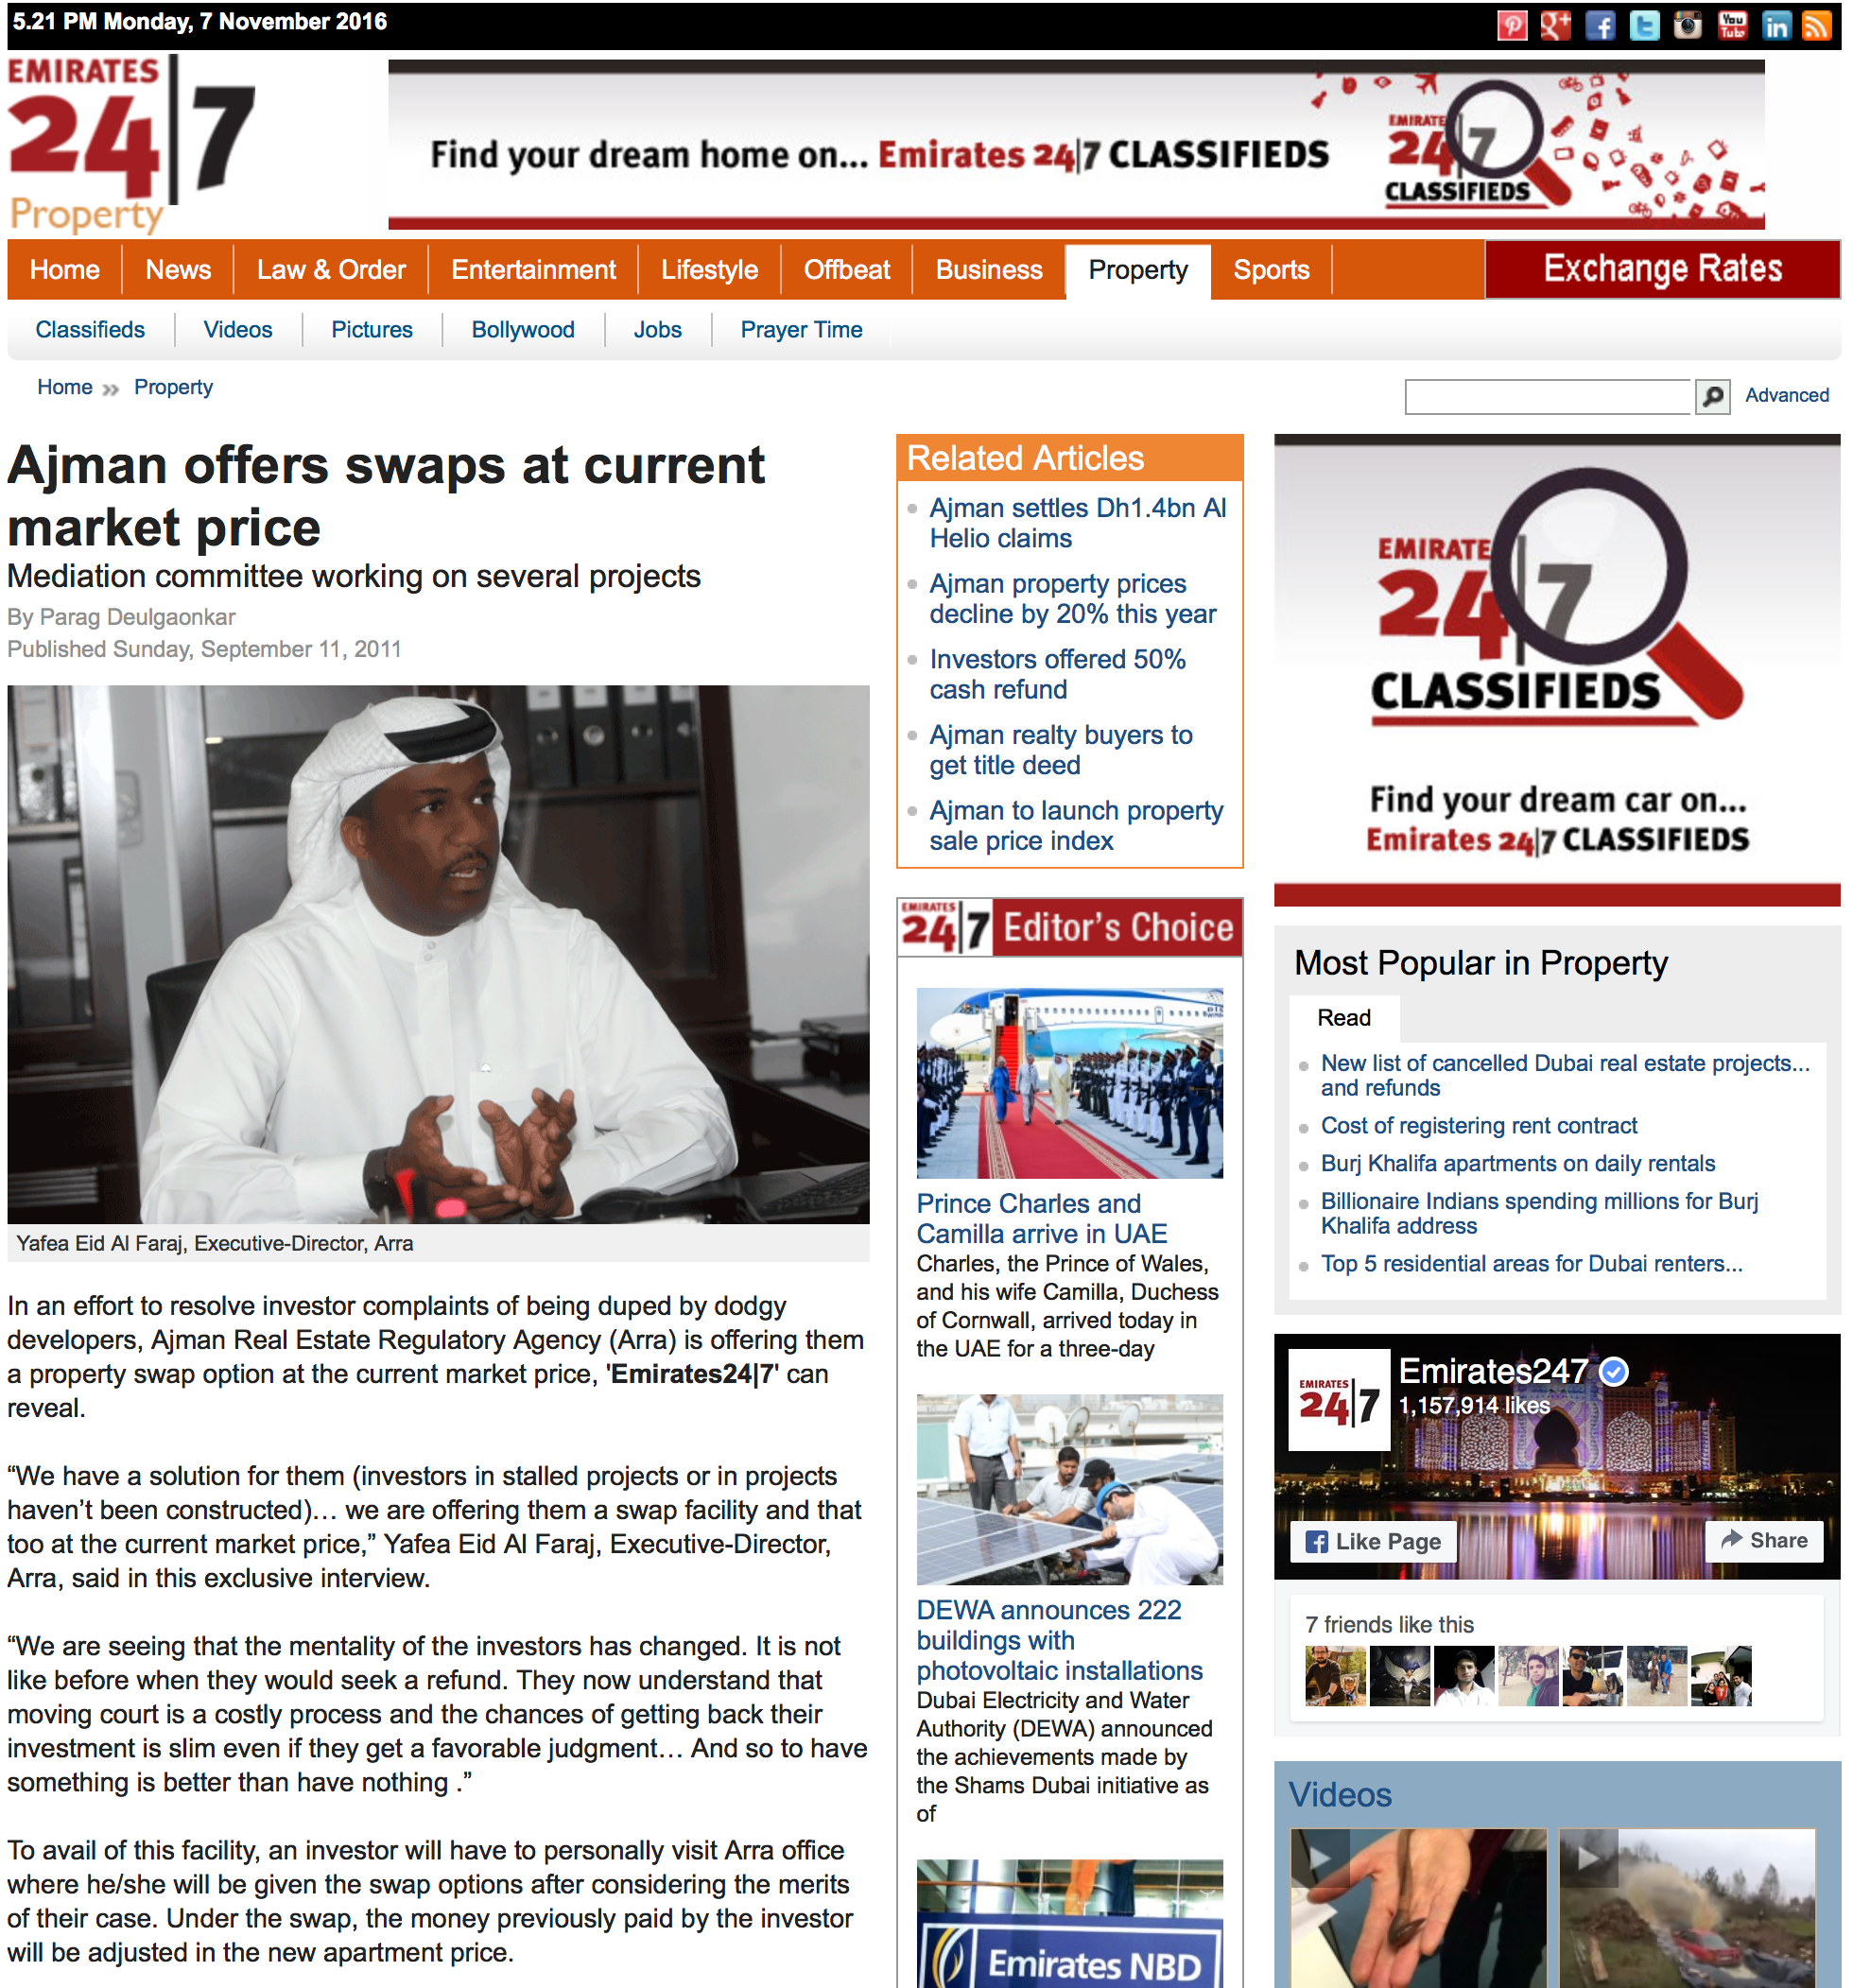 Ajman offers swaps at current market price - http://freehold